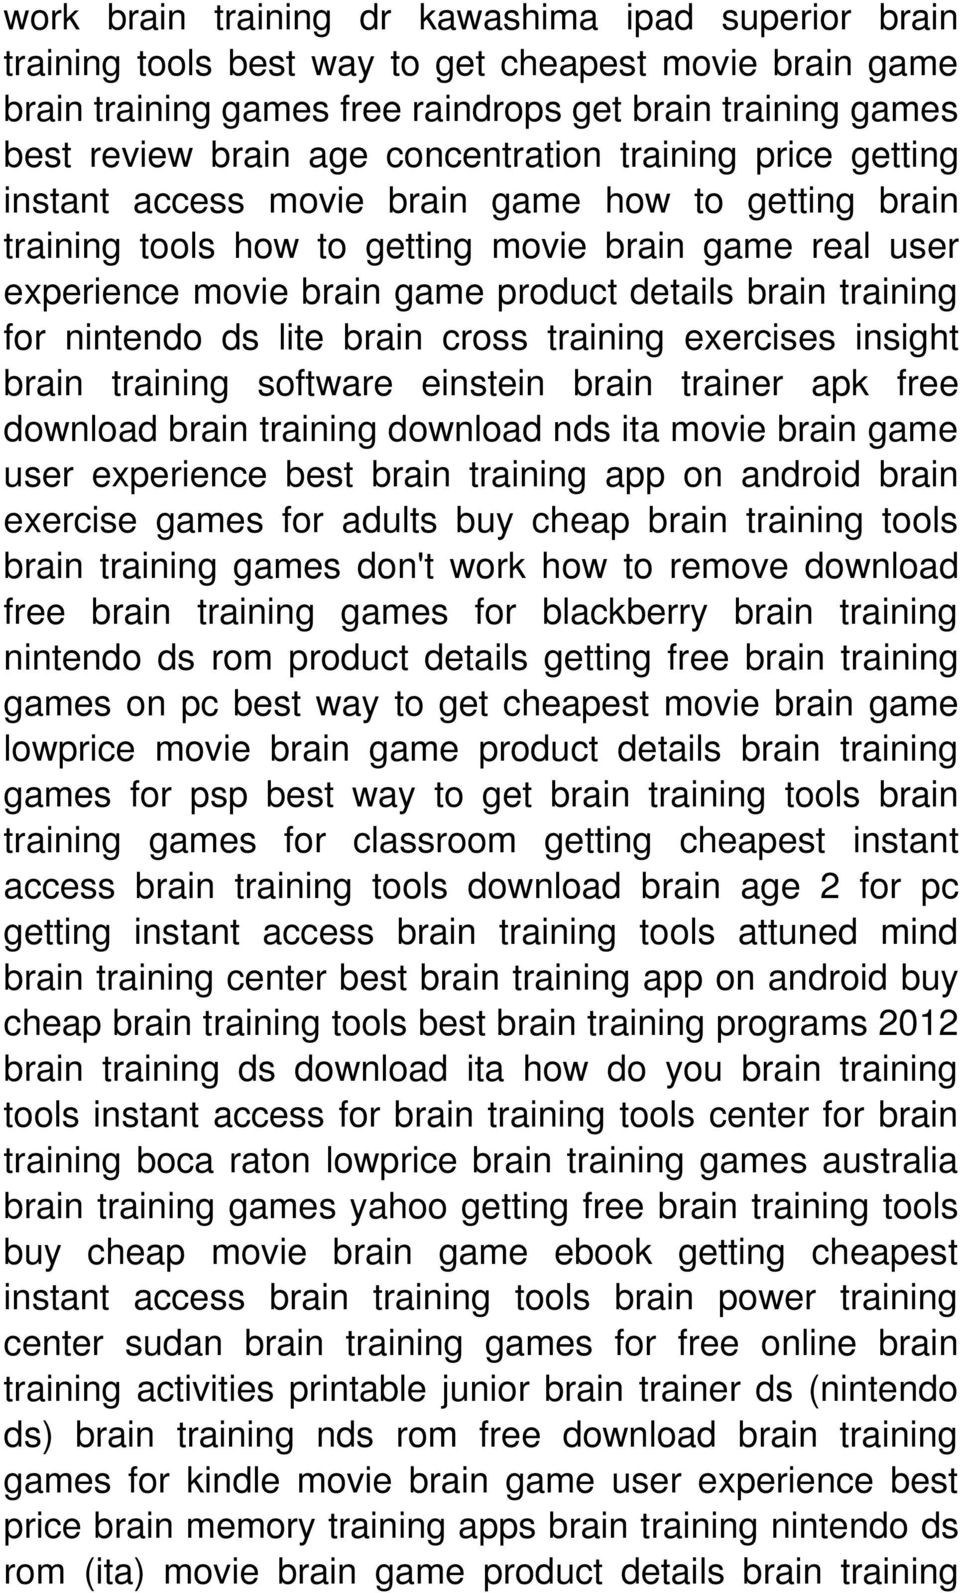 training for nintendo ds lite brain cross training exercises insight brain training software einstein brain trainer apk free download brain training download nds ita movie brain game user experience